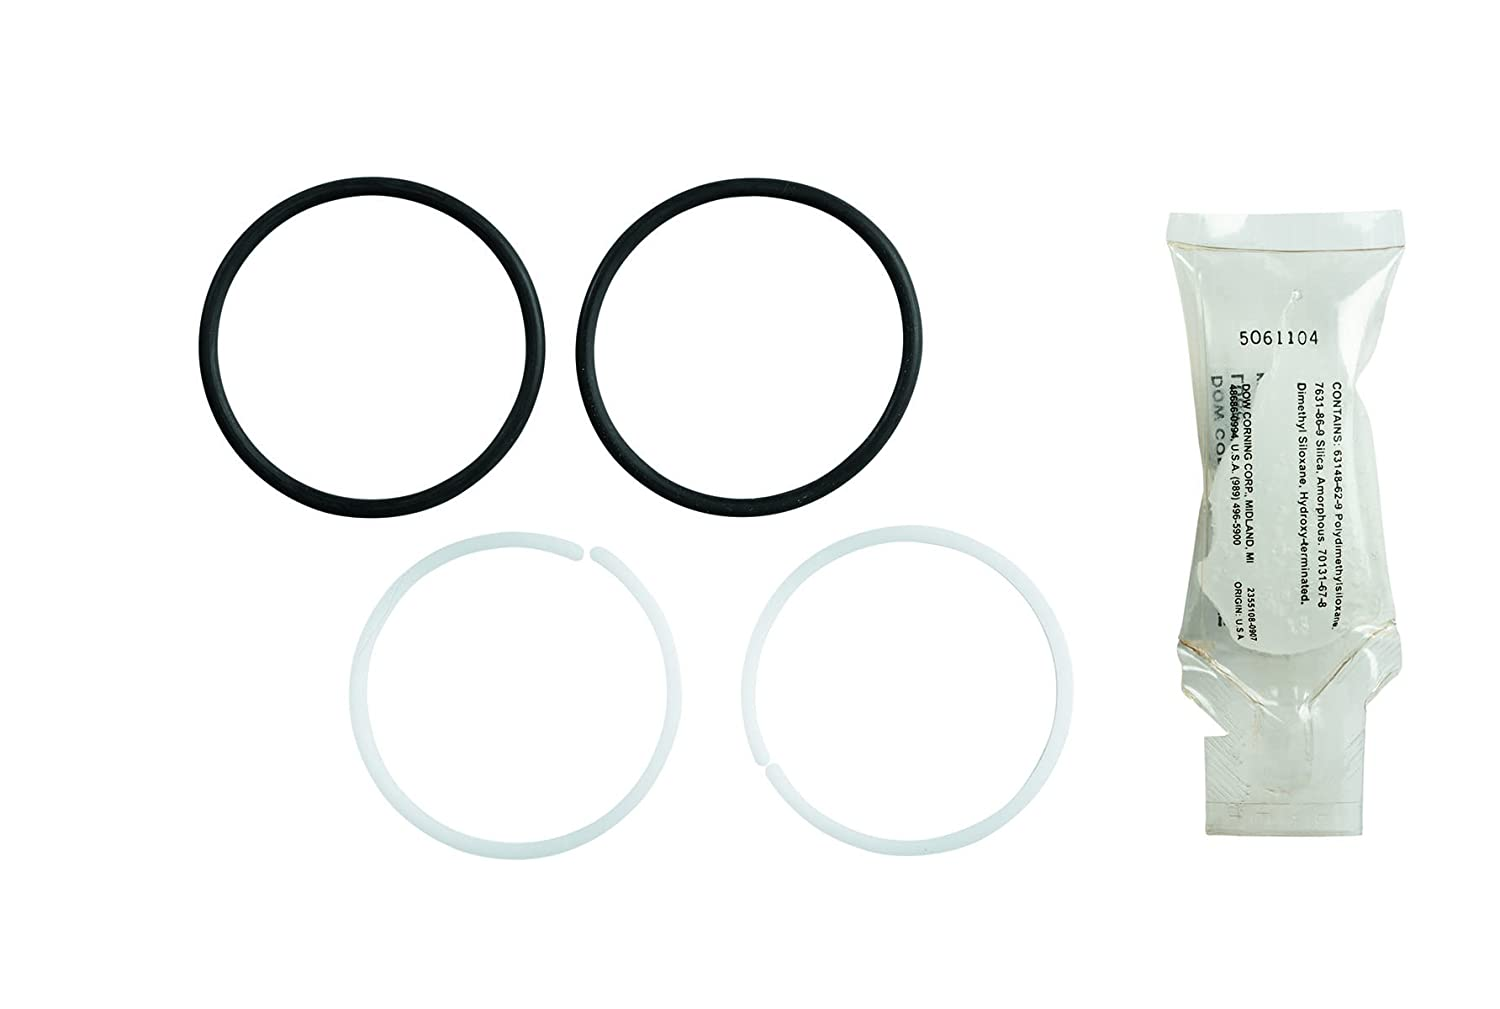 Kohler GP30420 Seal Kit for Kitchen Faucets with Bearings, O-Rings and Lube, Small Black & White